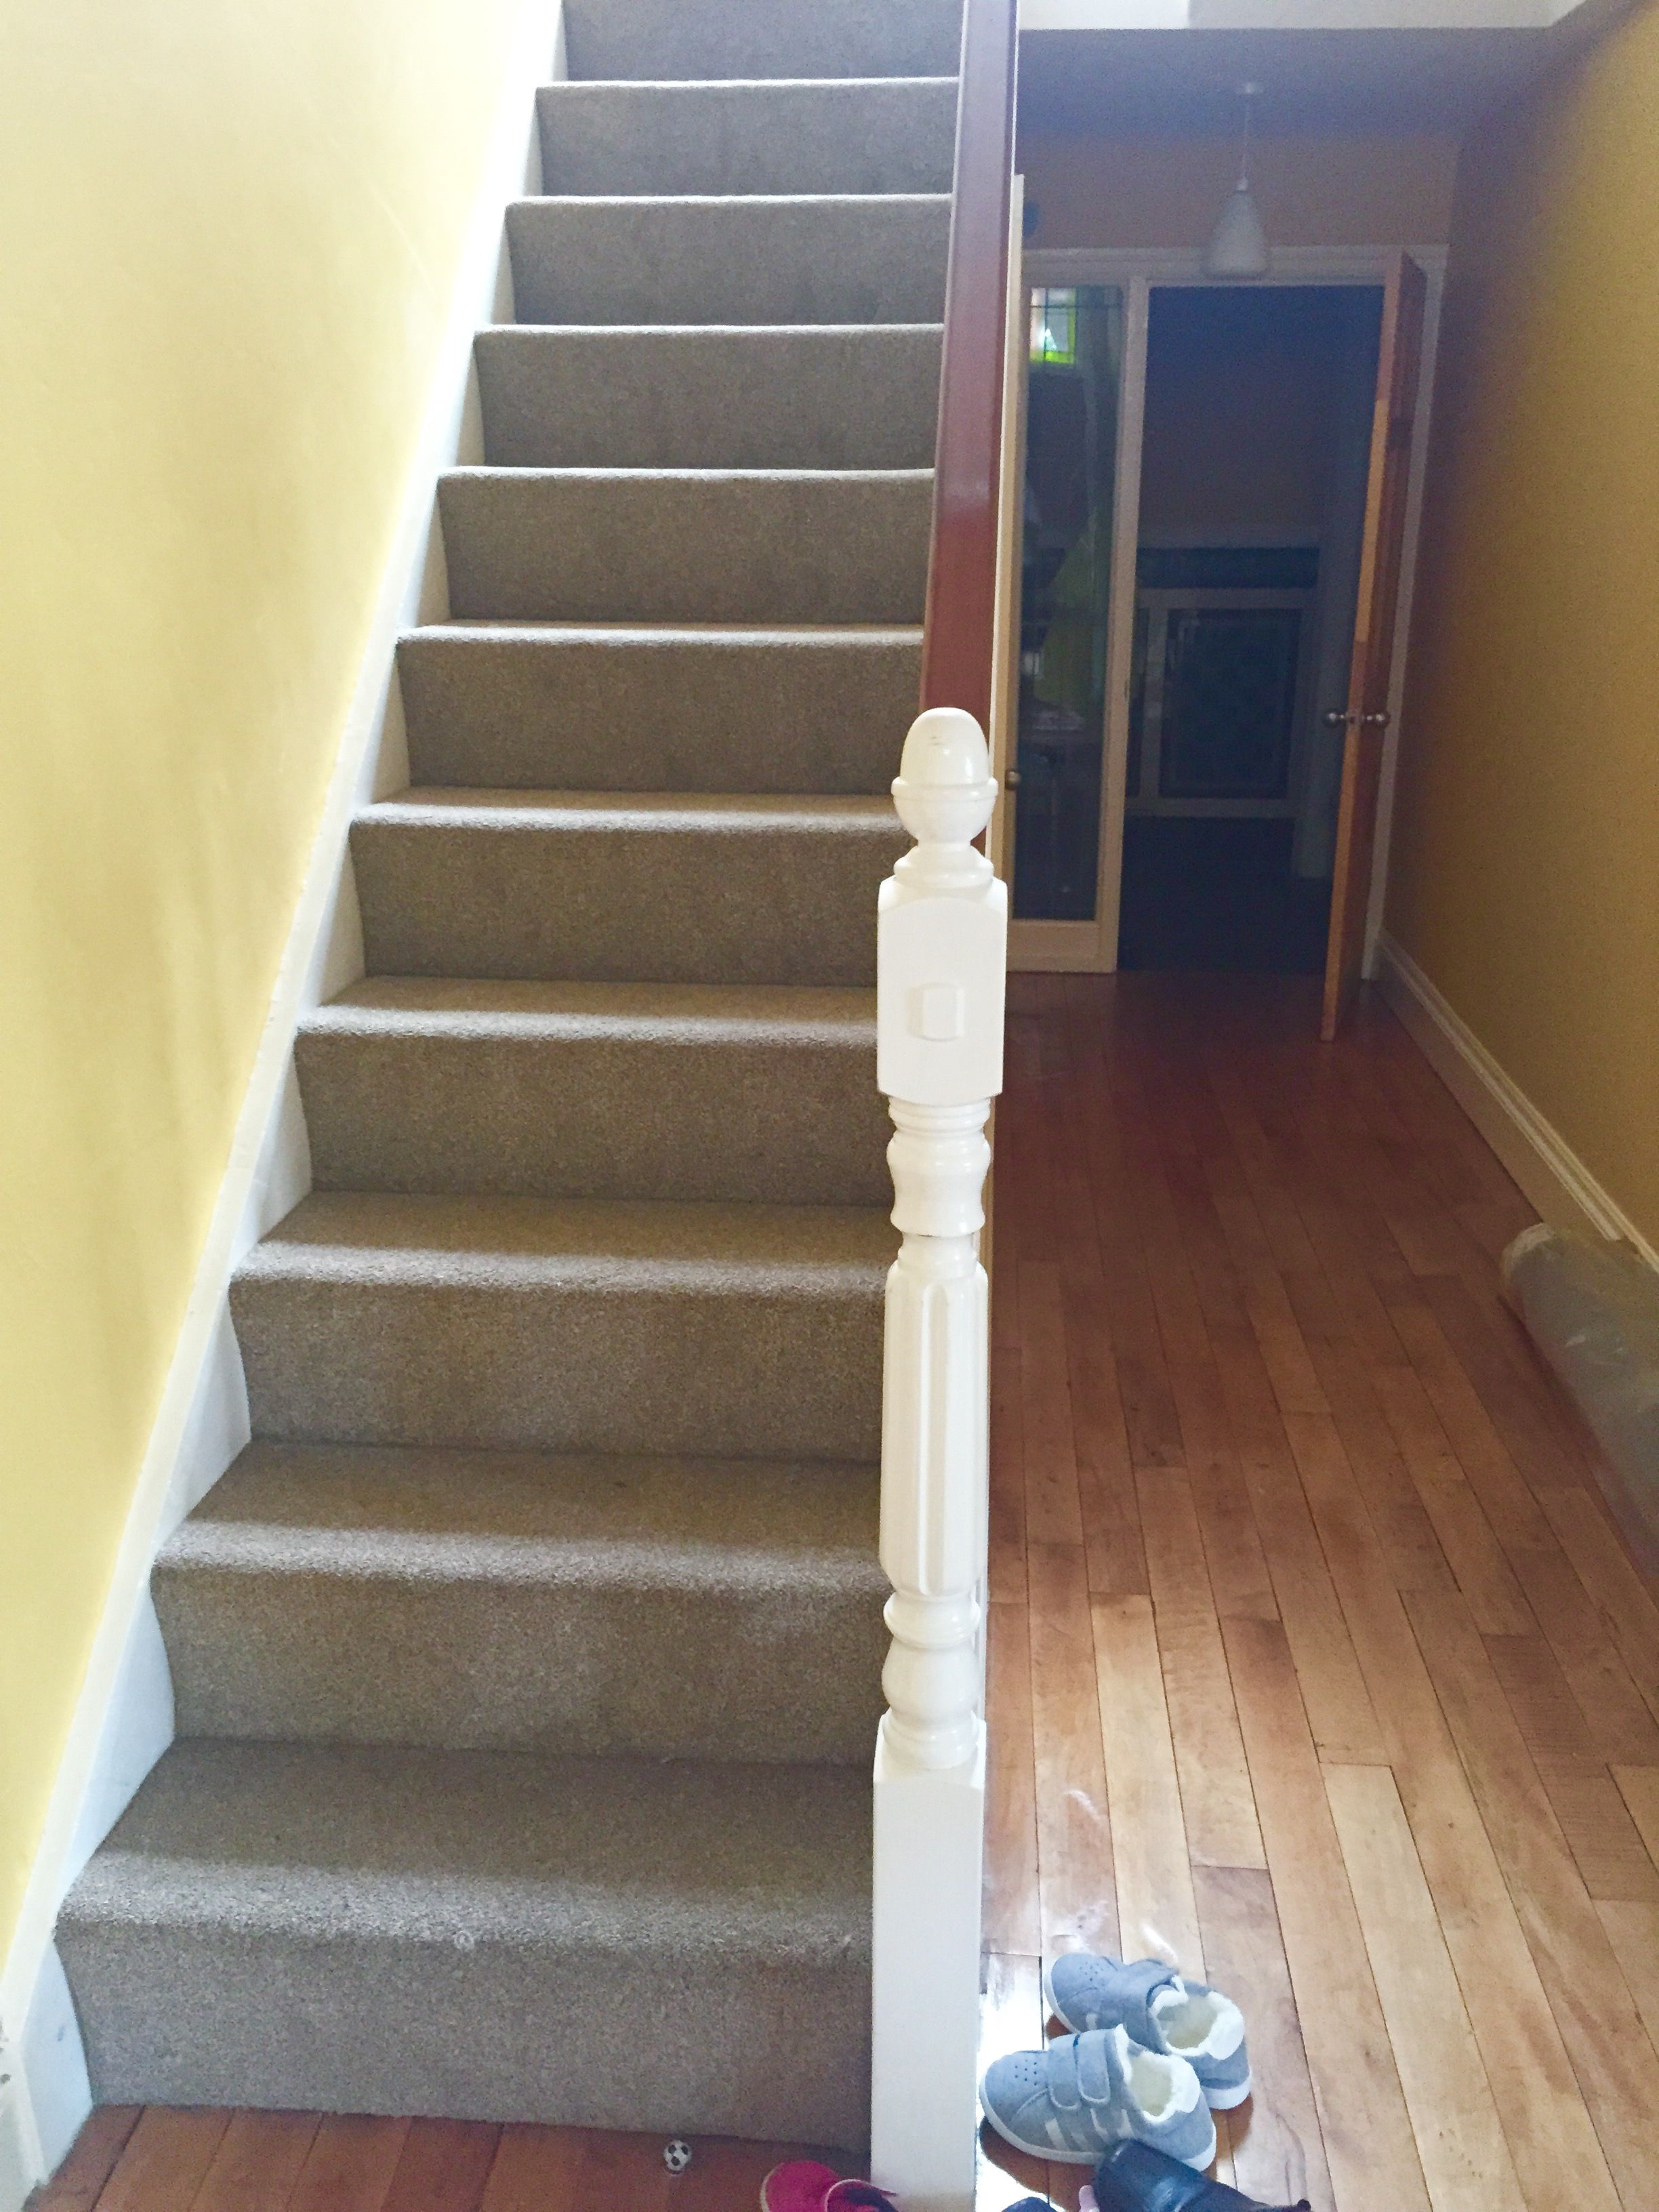 Quality Stairs Carpet Fitted By Our Expert Team Of Fitters In Stockport Perfect For A Busy Home Stairs Landing Carpet Carpet Fitting Home Carpet